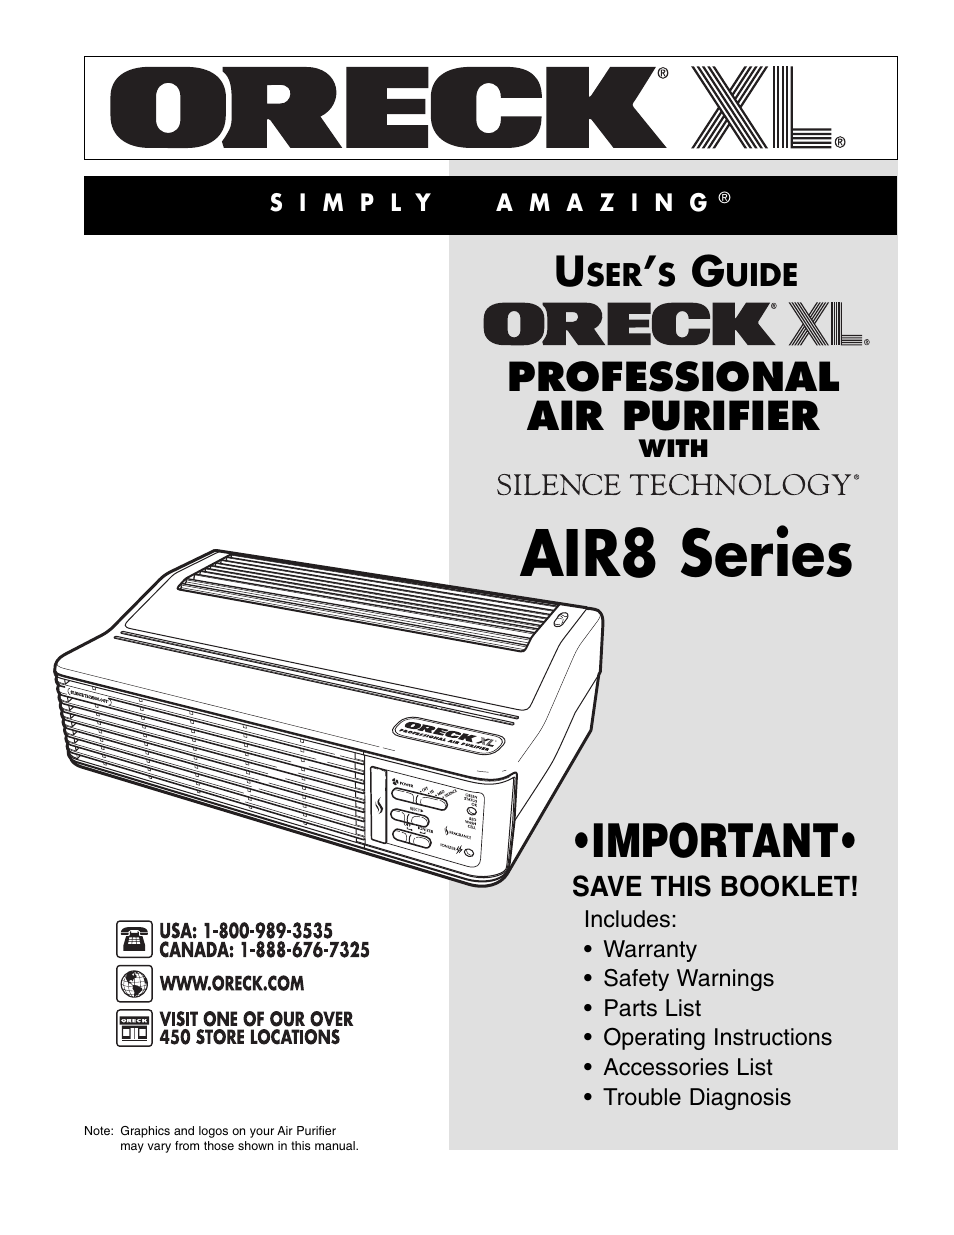 Oreck Xl 2600hh Wiring Diagram 30 Images Upright Rrofessional Air Purifier Air8 Series Page1 Vacuum Diagrams Pdf Trusted